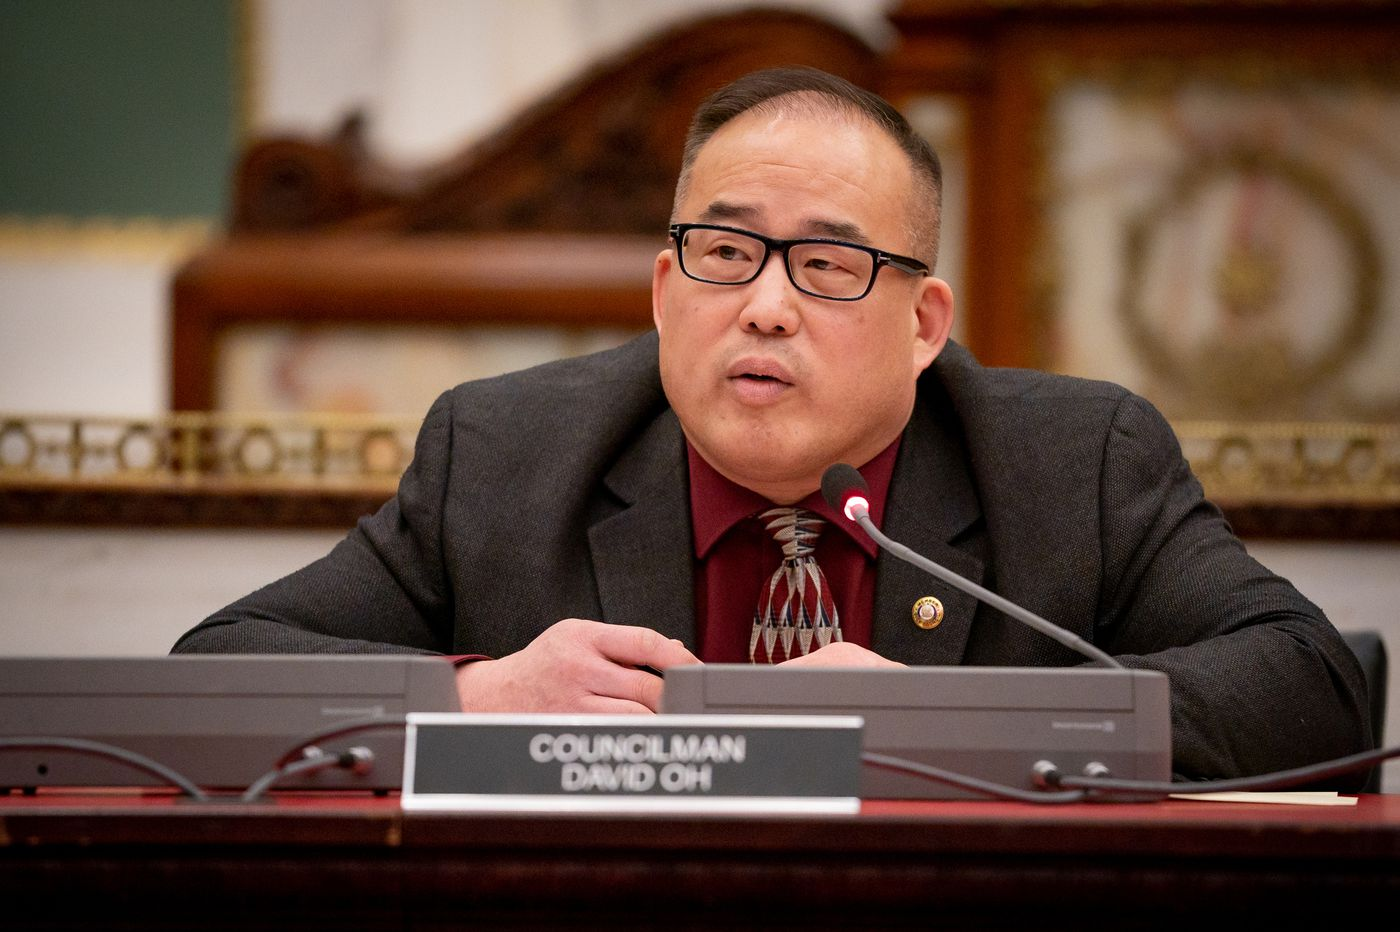 Philadelphia City Councilman David Oh's clumsy post a reminder: Elections matter | Editorial